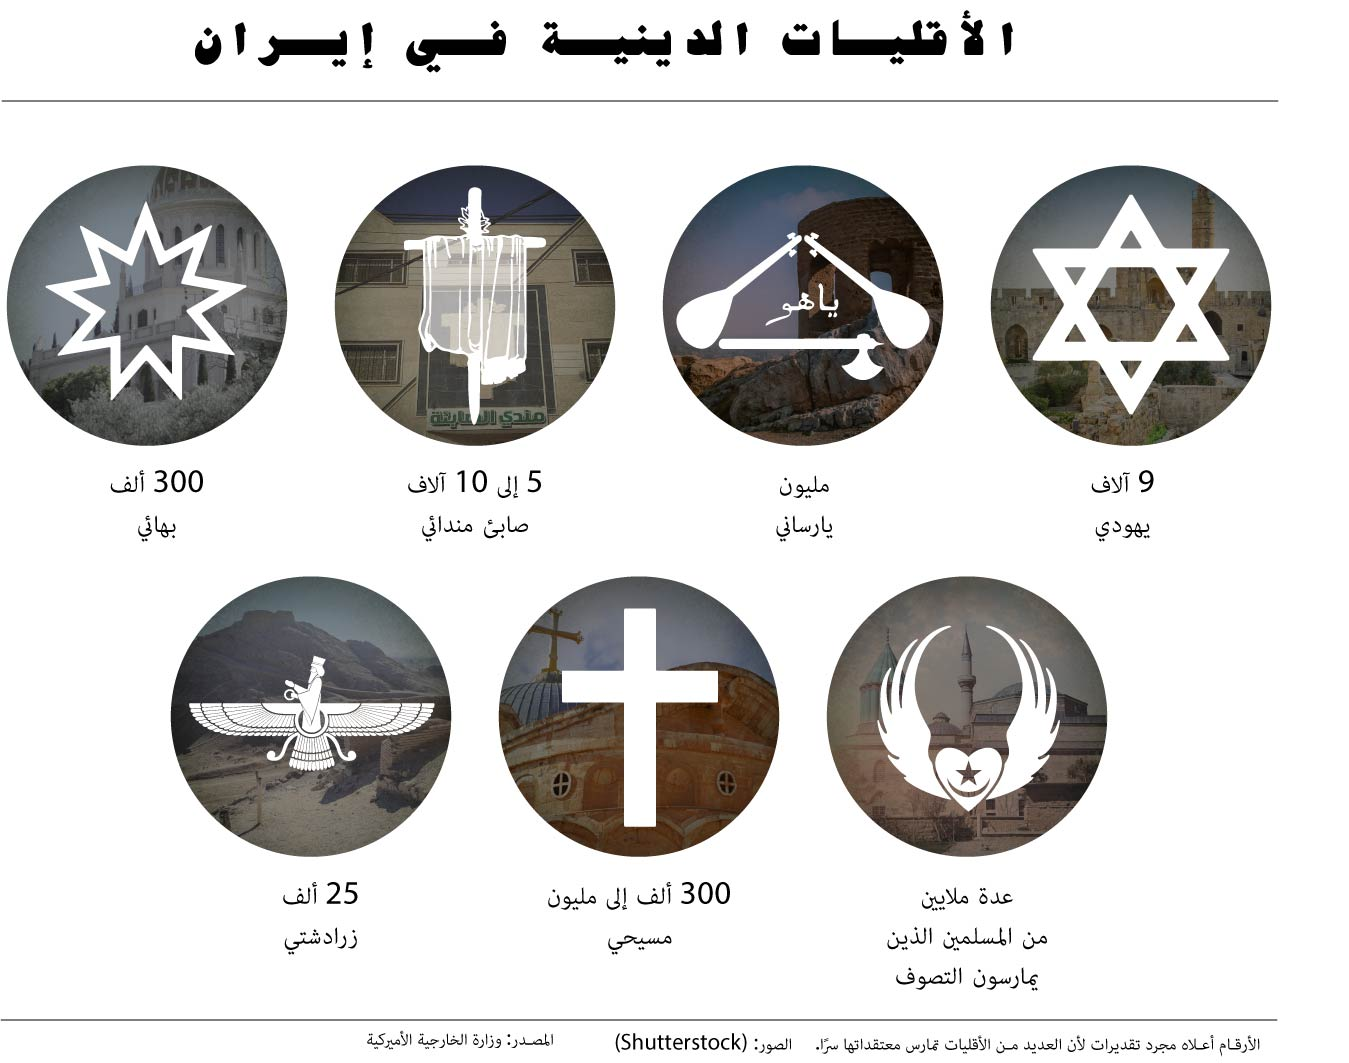 Graphic showing symbols of minority religions and estimated numbers of members in Iran (© Shutterstock/State Dept.)